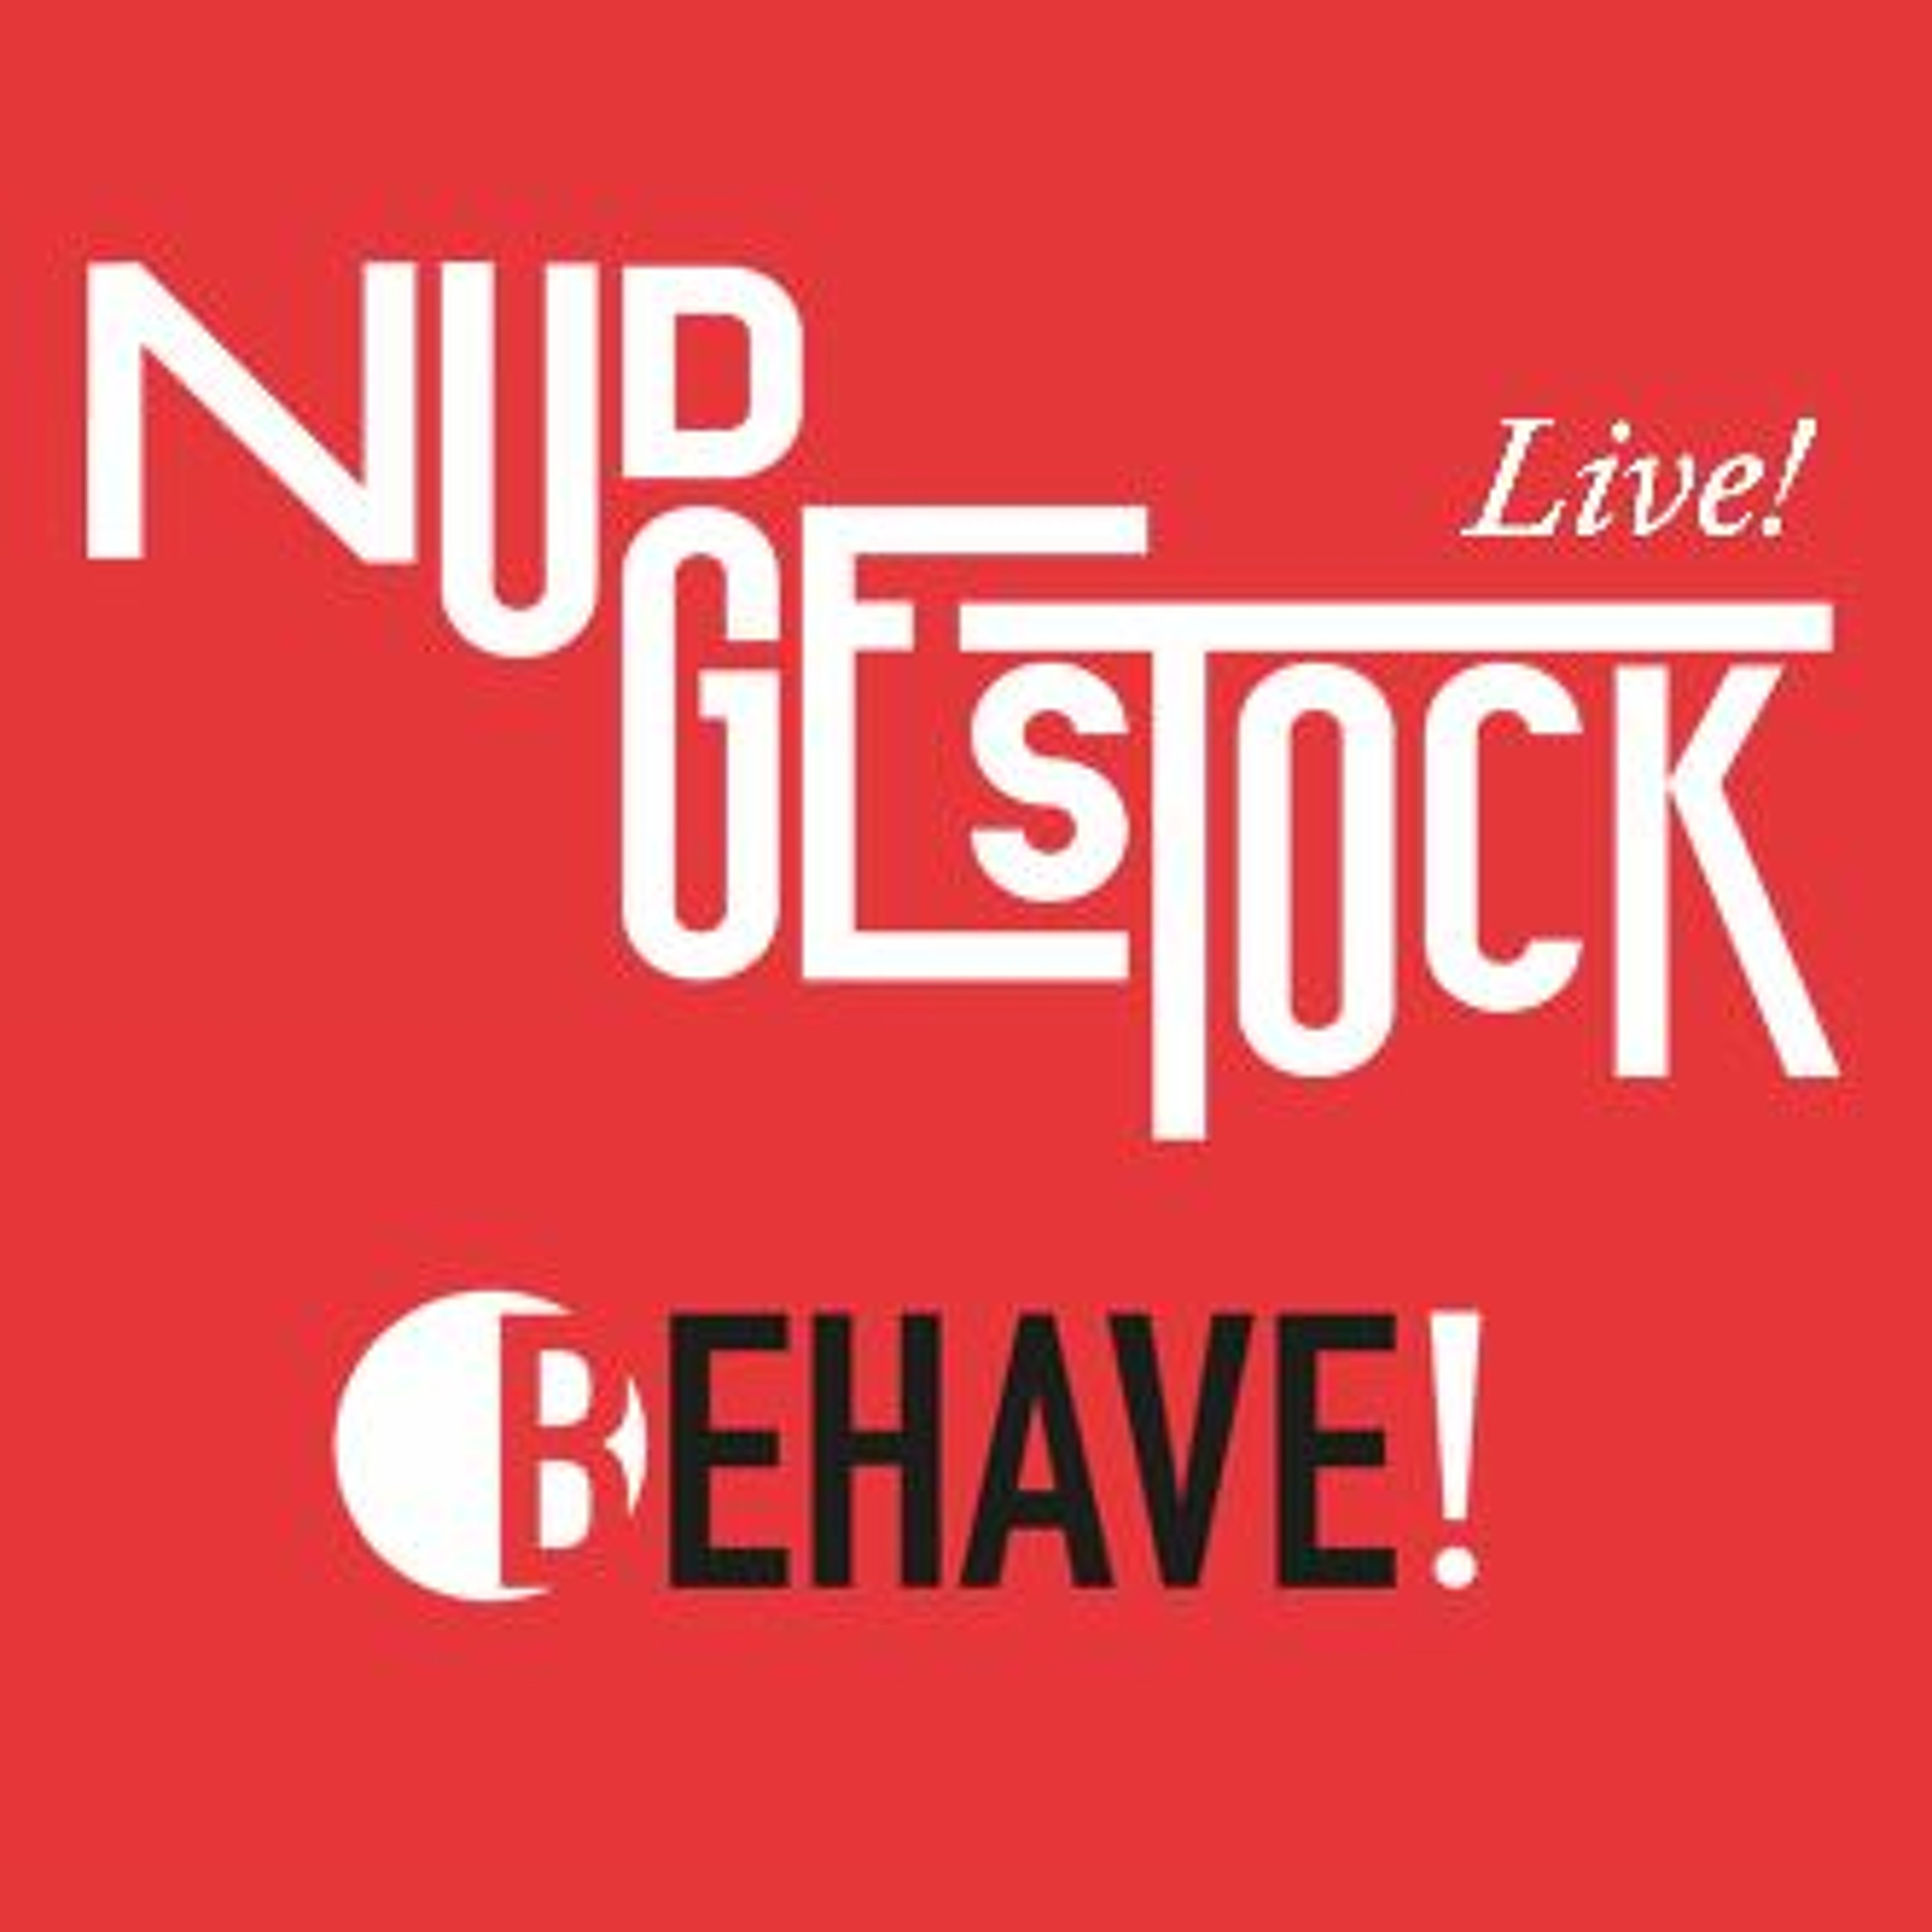 Episode 24 - Live from Nudgestock 2019